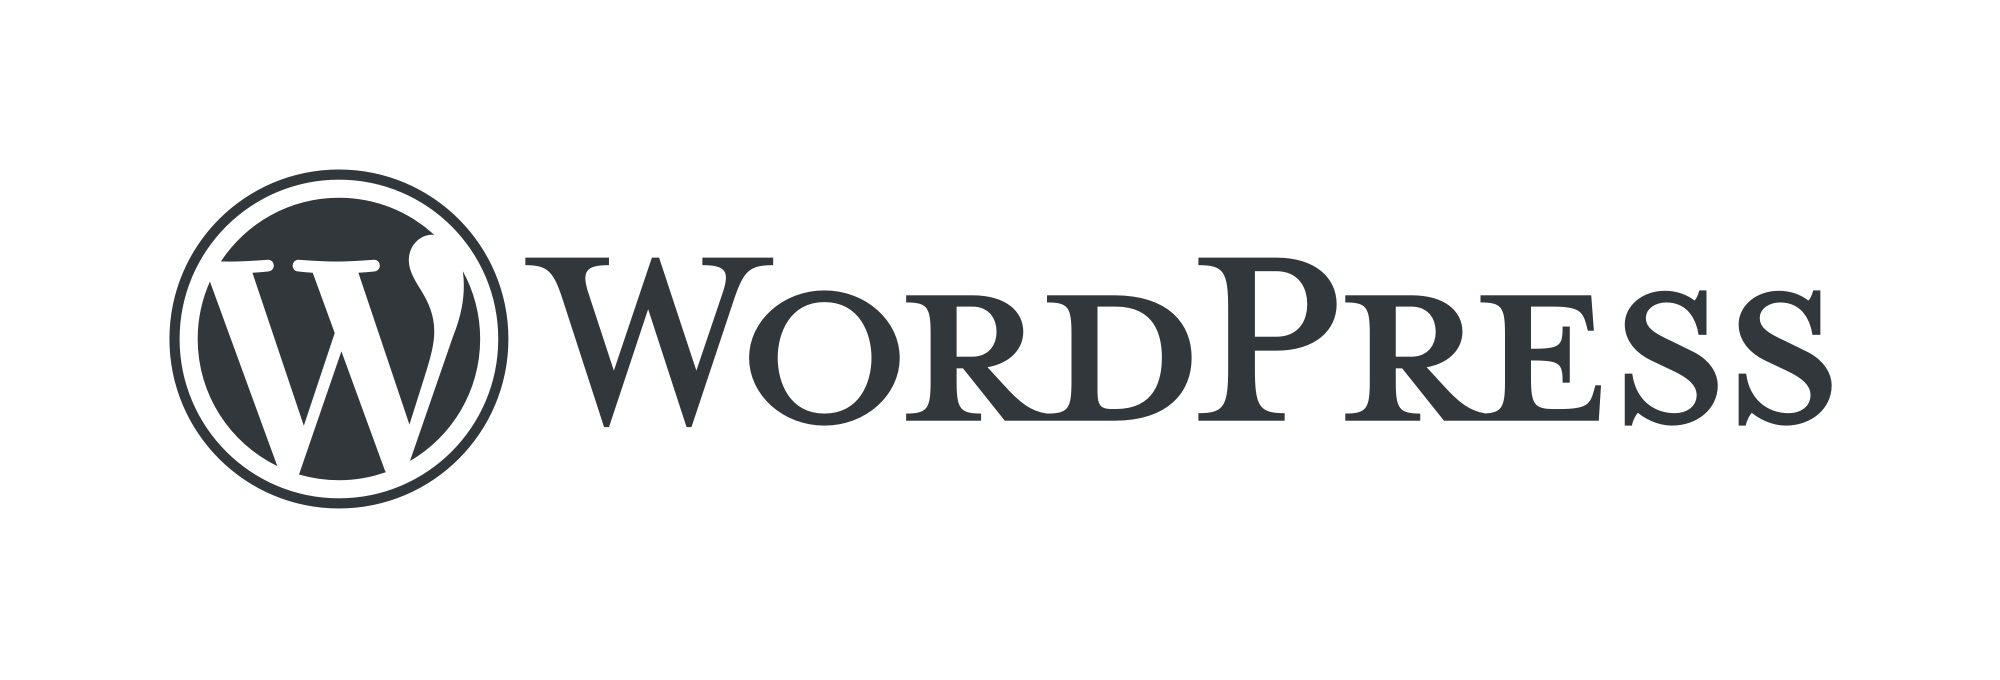 WordPress logotype standard